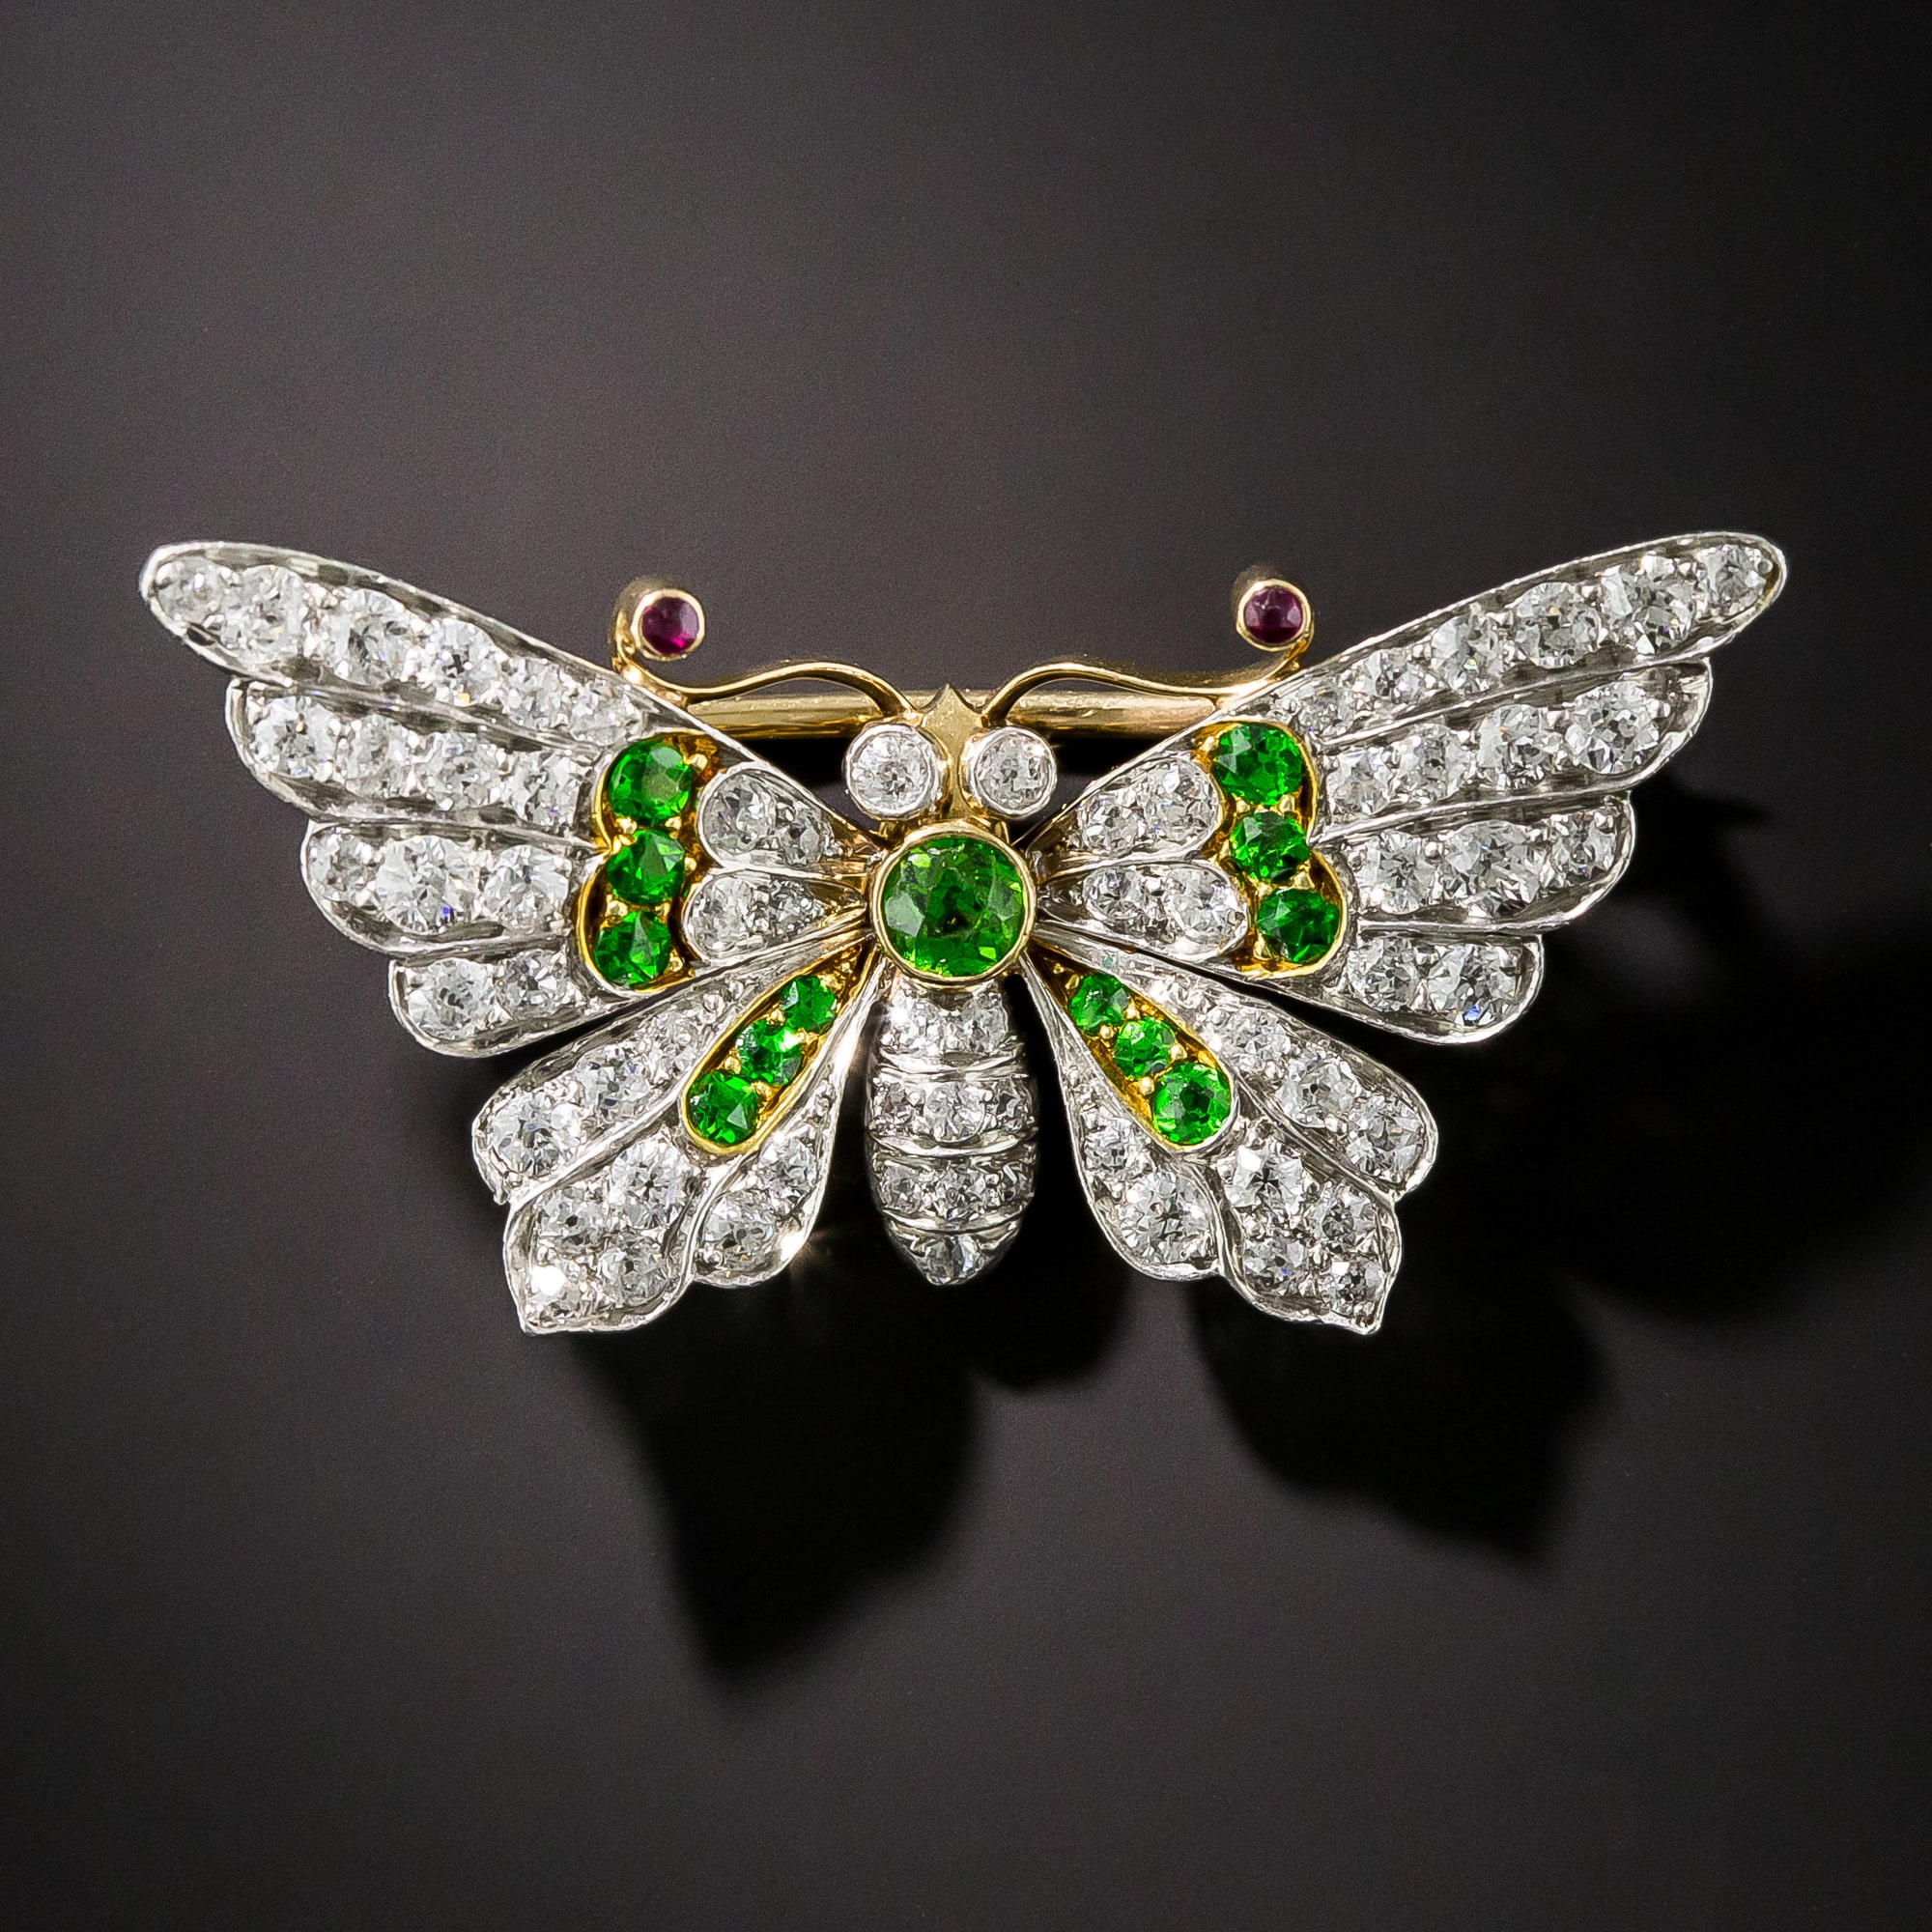 Diamond and Demantoid Garnet Butterfly Brooch c.Fin de Siecle.